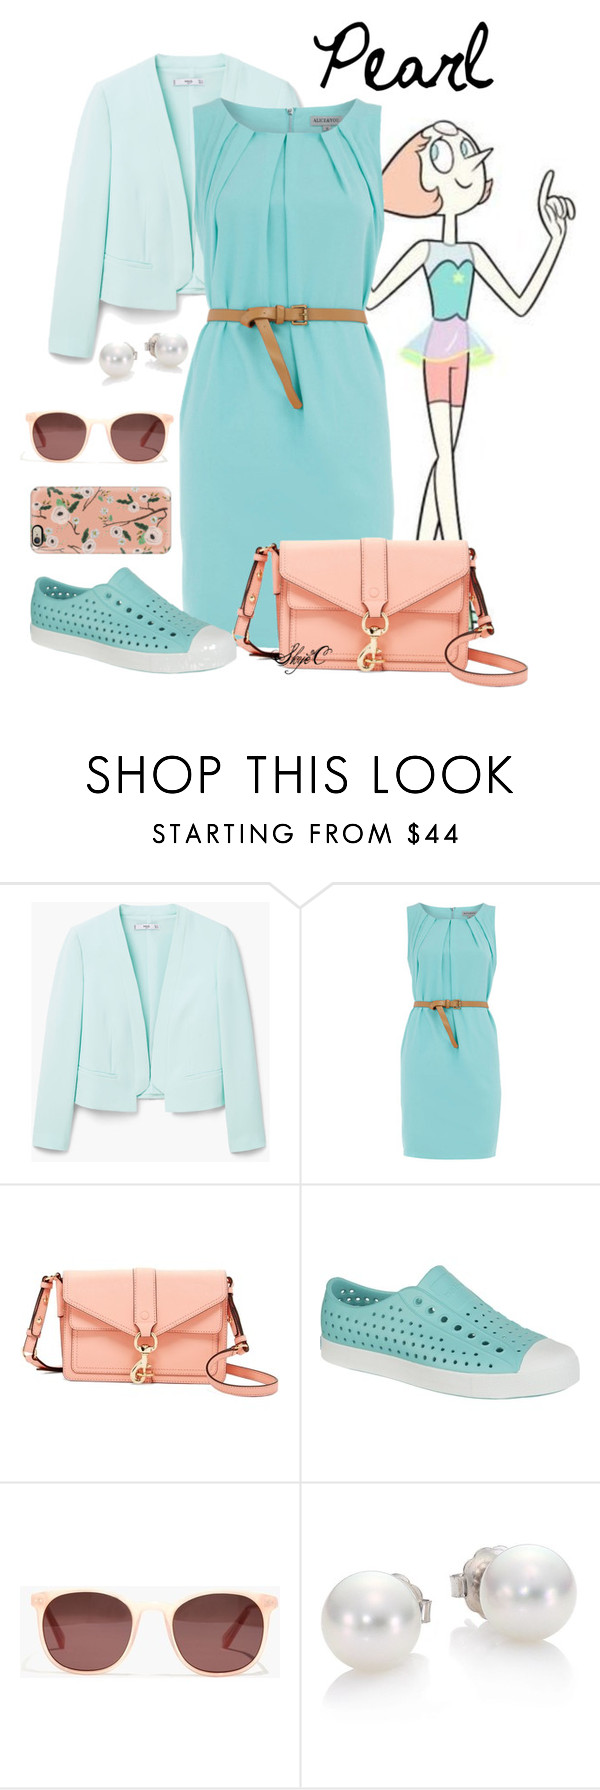 """""""Pearl - Steven Universe"""" by rubytyra ❤ liked on Polyvore featuring MANGO, Dorothy Perkins, Rebecca Minkoff, Native Shoes, Madewell, Mikimoto, Casetify, pearl and stevenuniverse"""